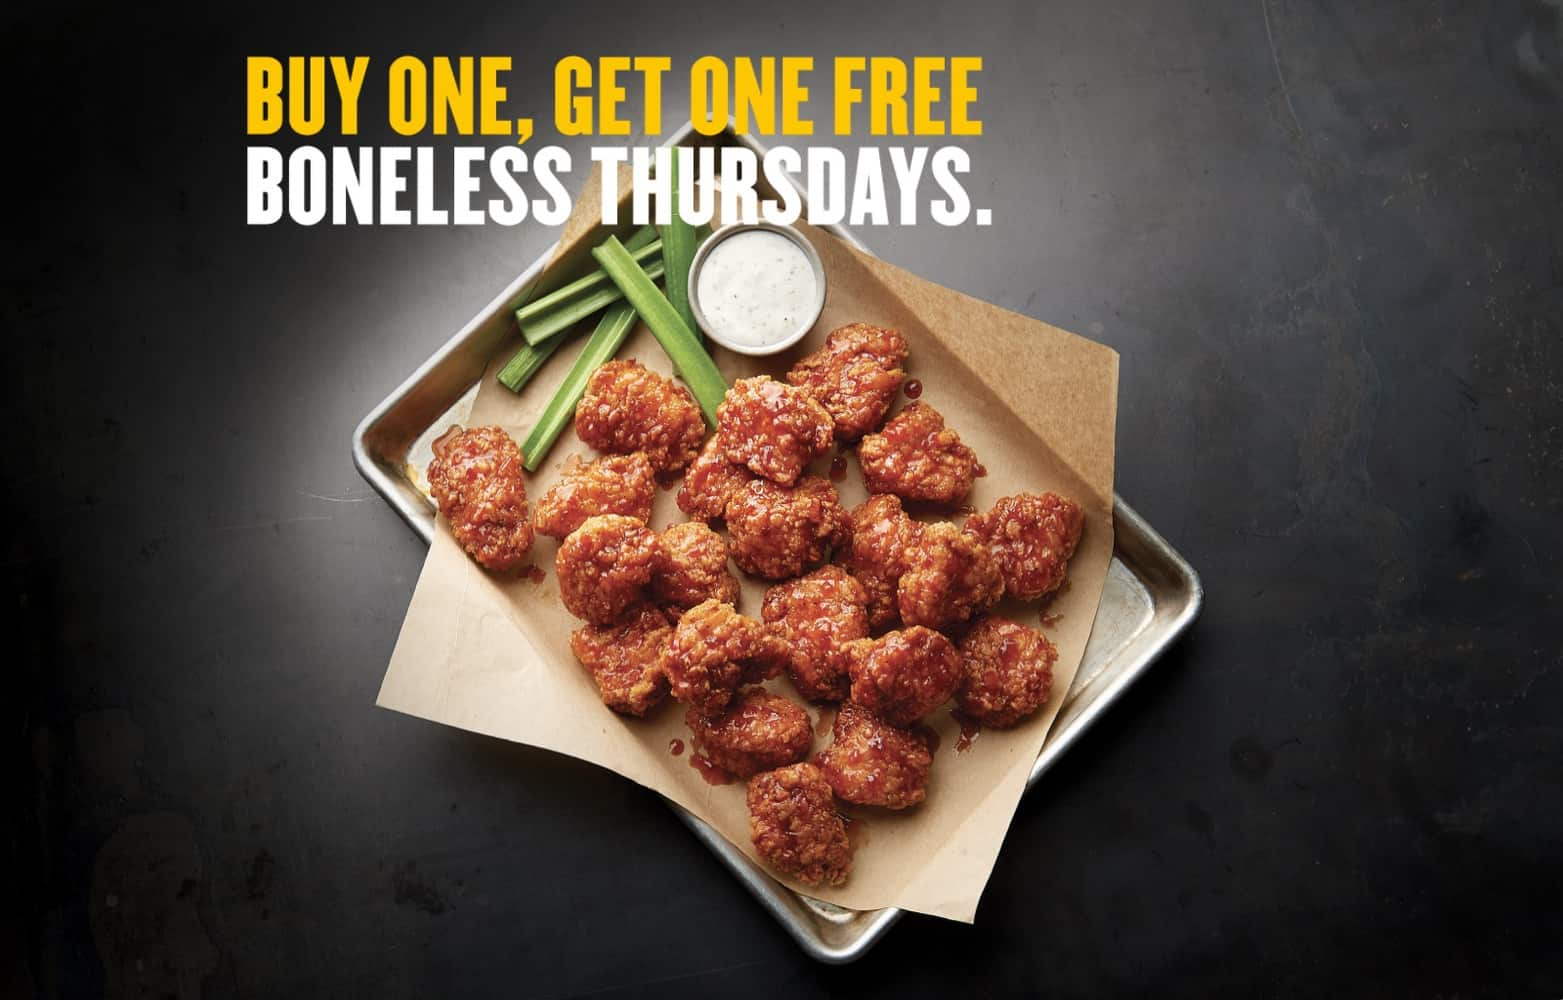 Boneless Thursdays at Buffalo Wild Wings